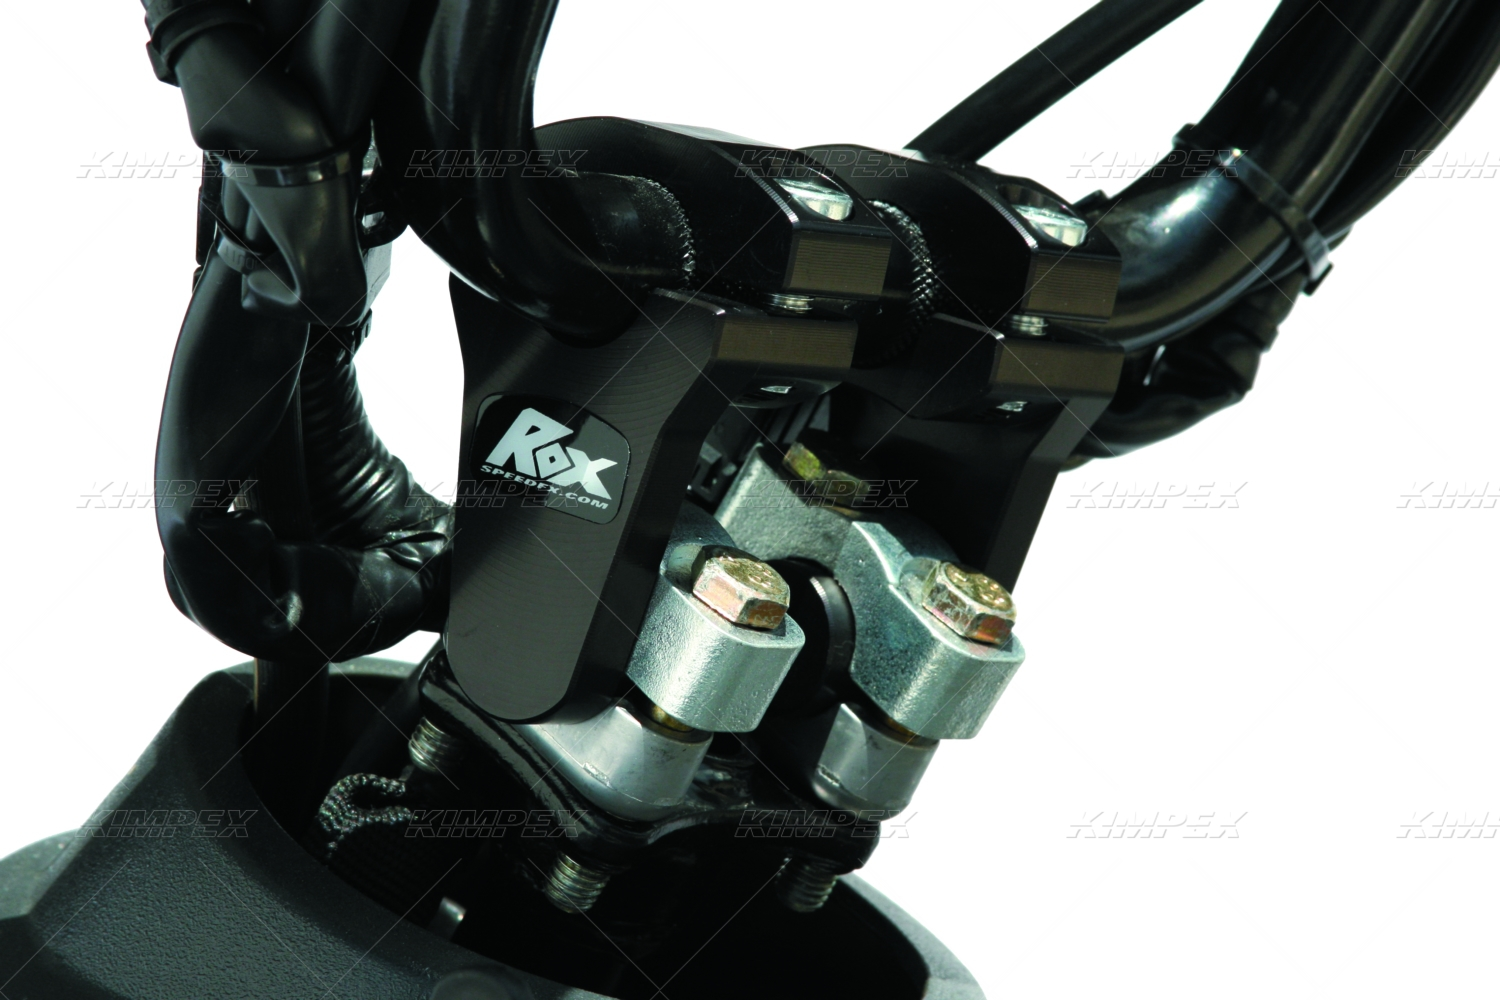 ROX SPEED FX PIVOTING HANDLEBAR RISERS 2 INCH RISE For 7 8